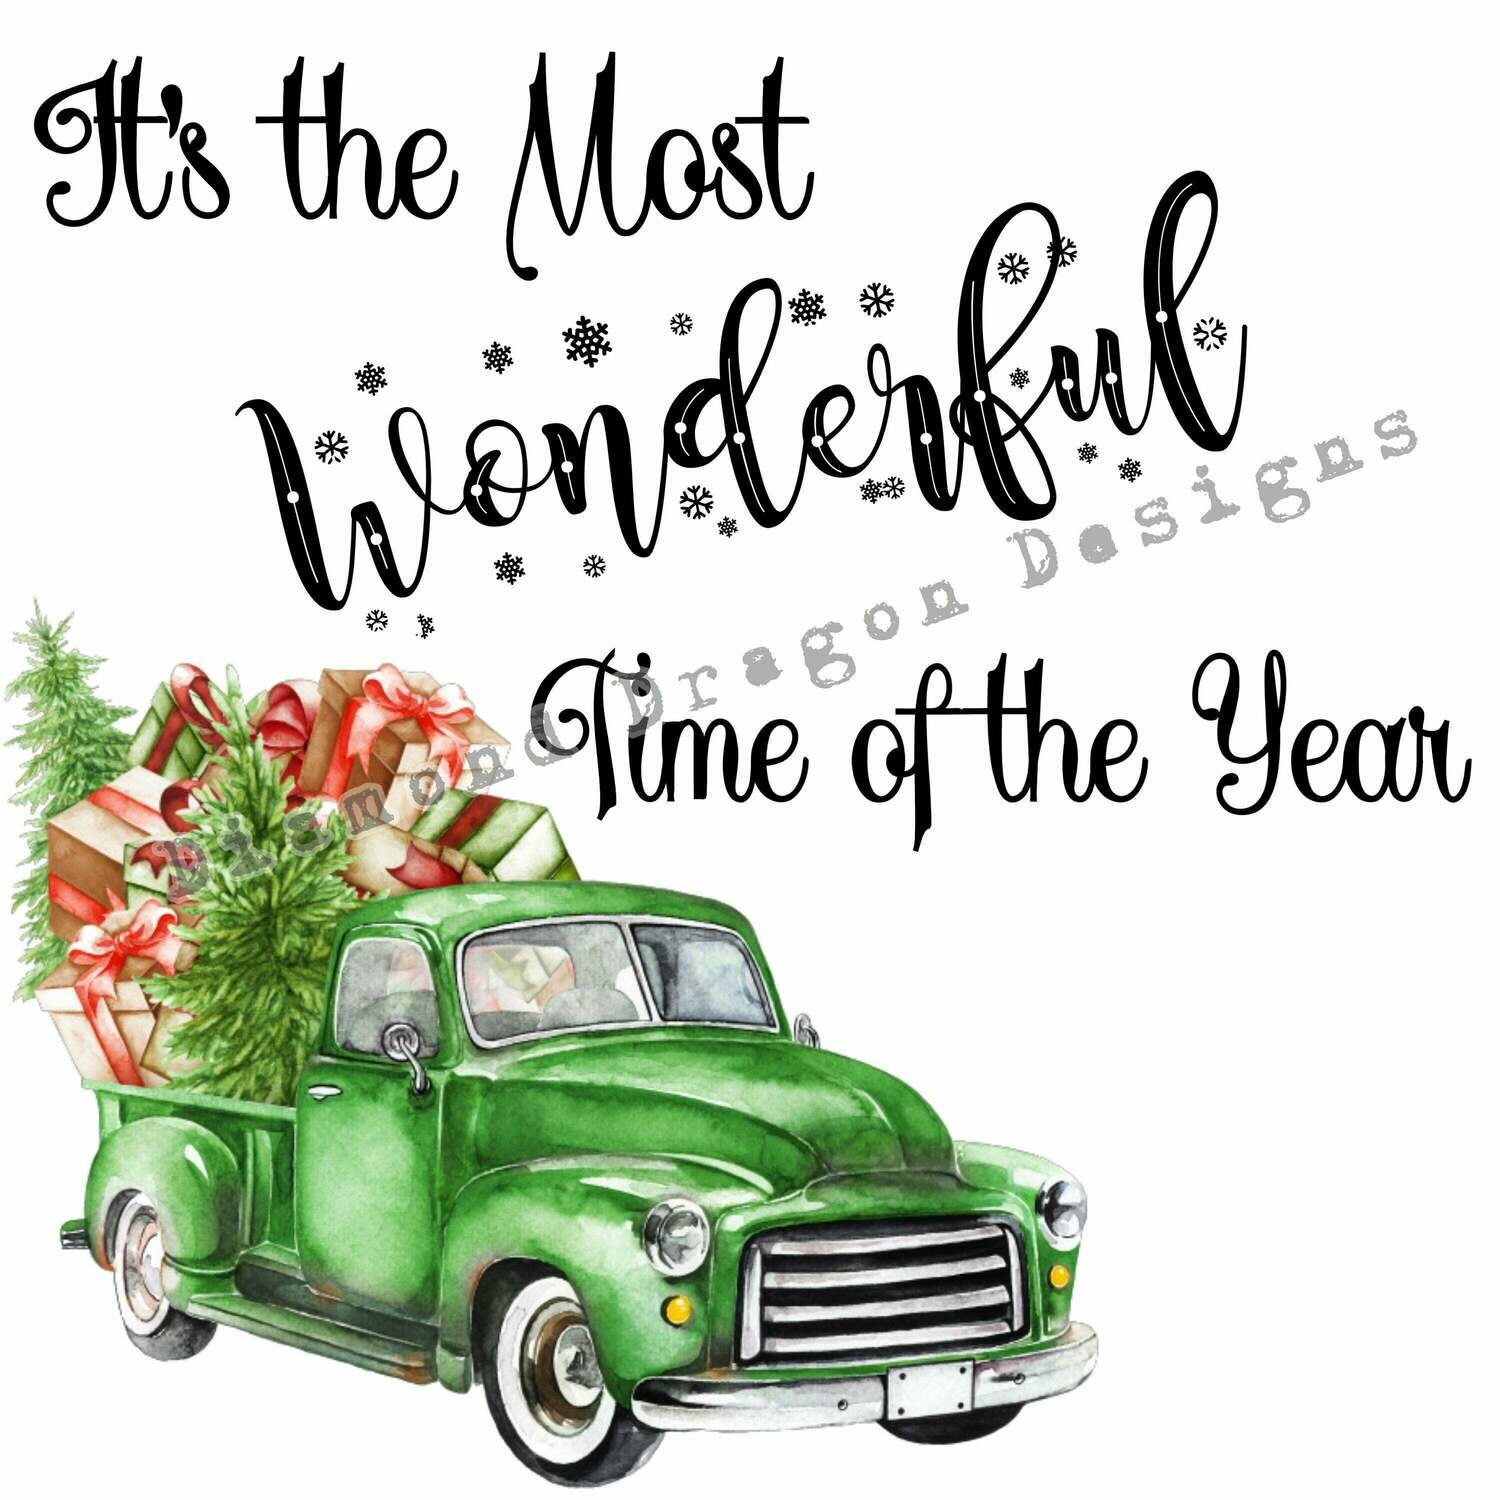 Christmas - Truck, Christmas Tree, It's the most wonderful time, Green Vintage Truck, Digital Image